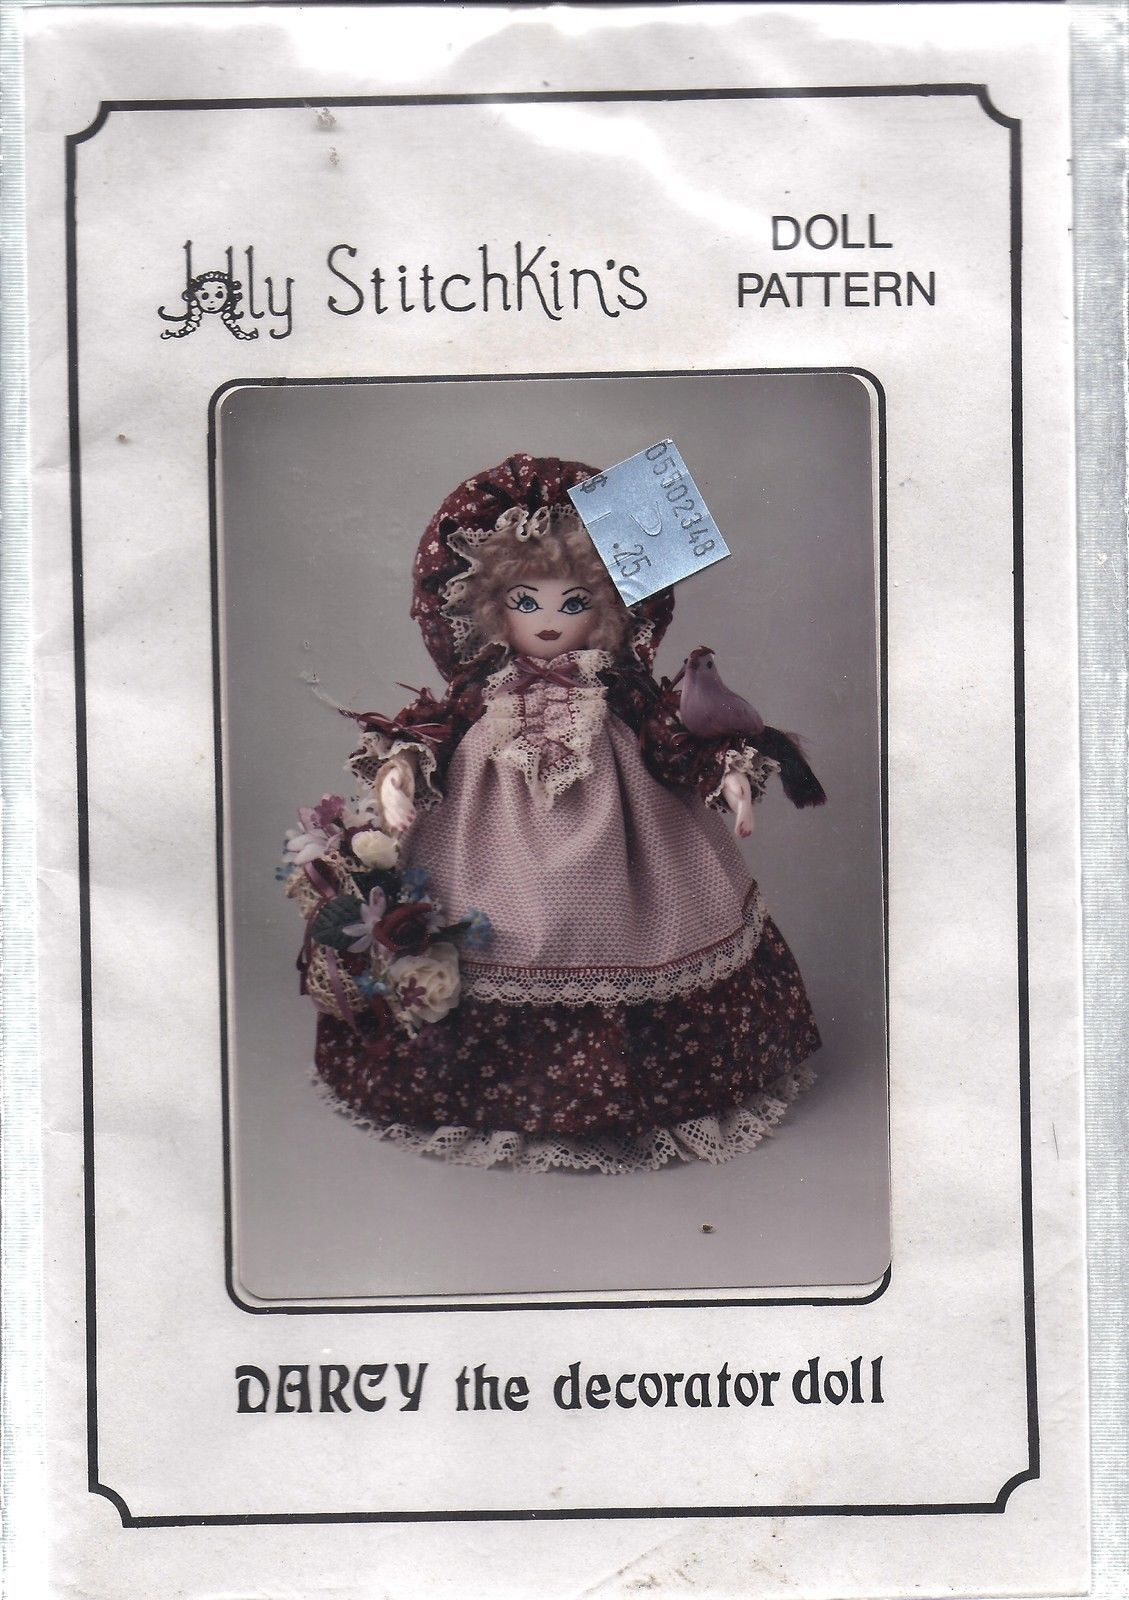 "Vintage Craft Sewing Pattern Darcy Decorator Doll 15"" Clothes Holly Stitchkins"